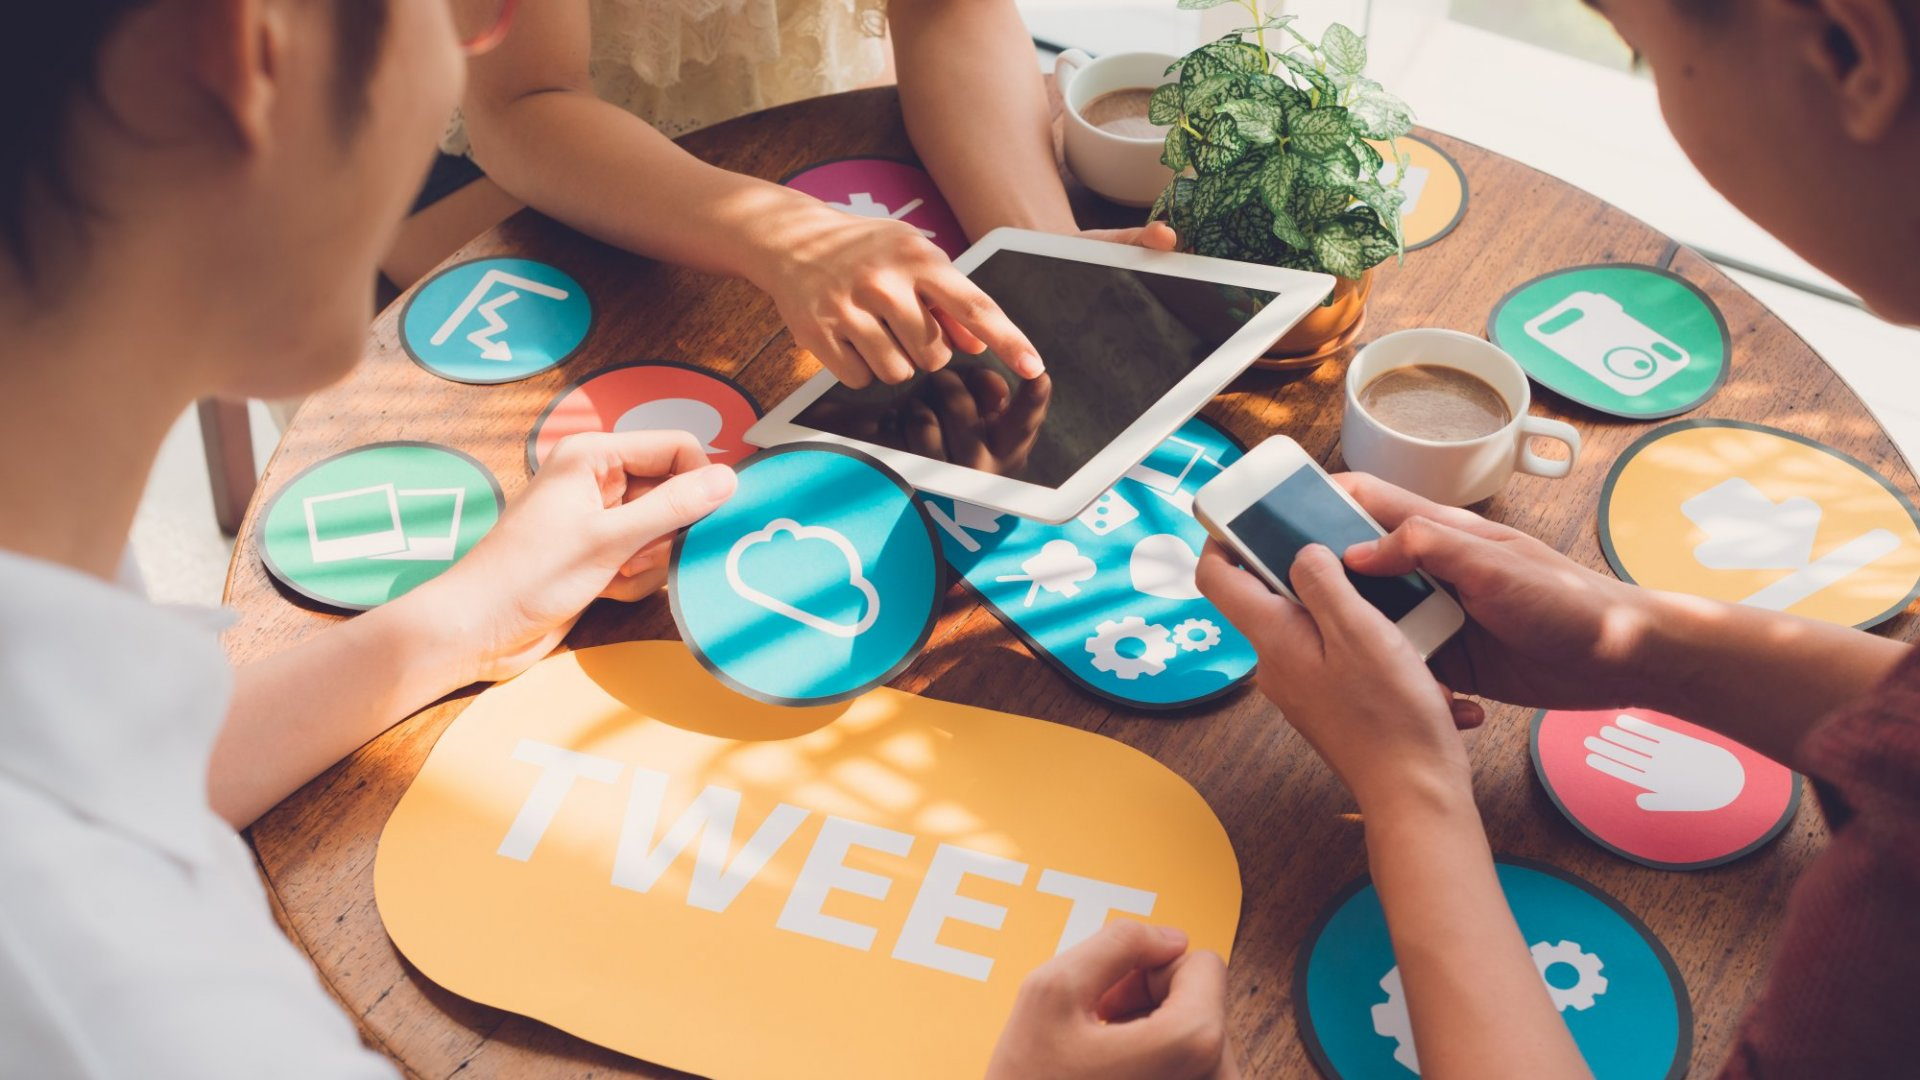 How to Make Your Social Media Marketing Work Together